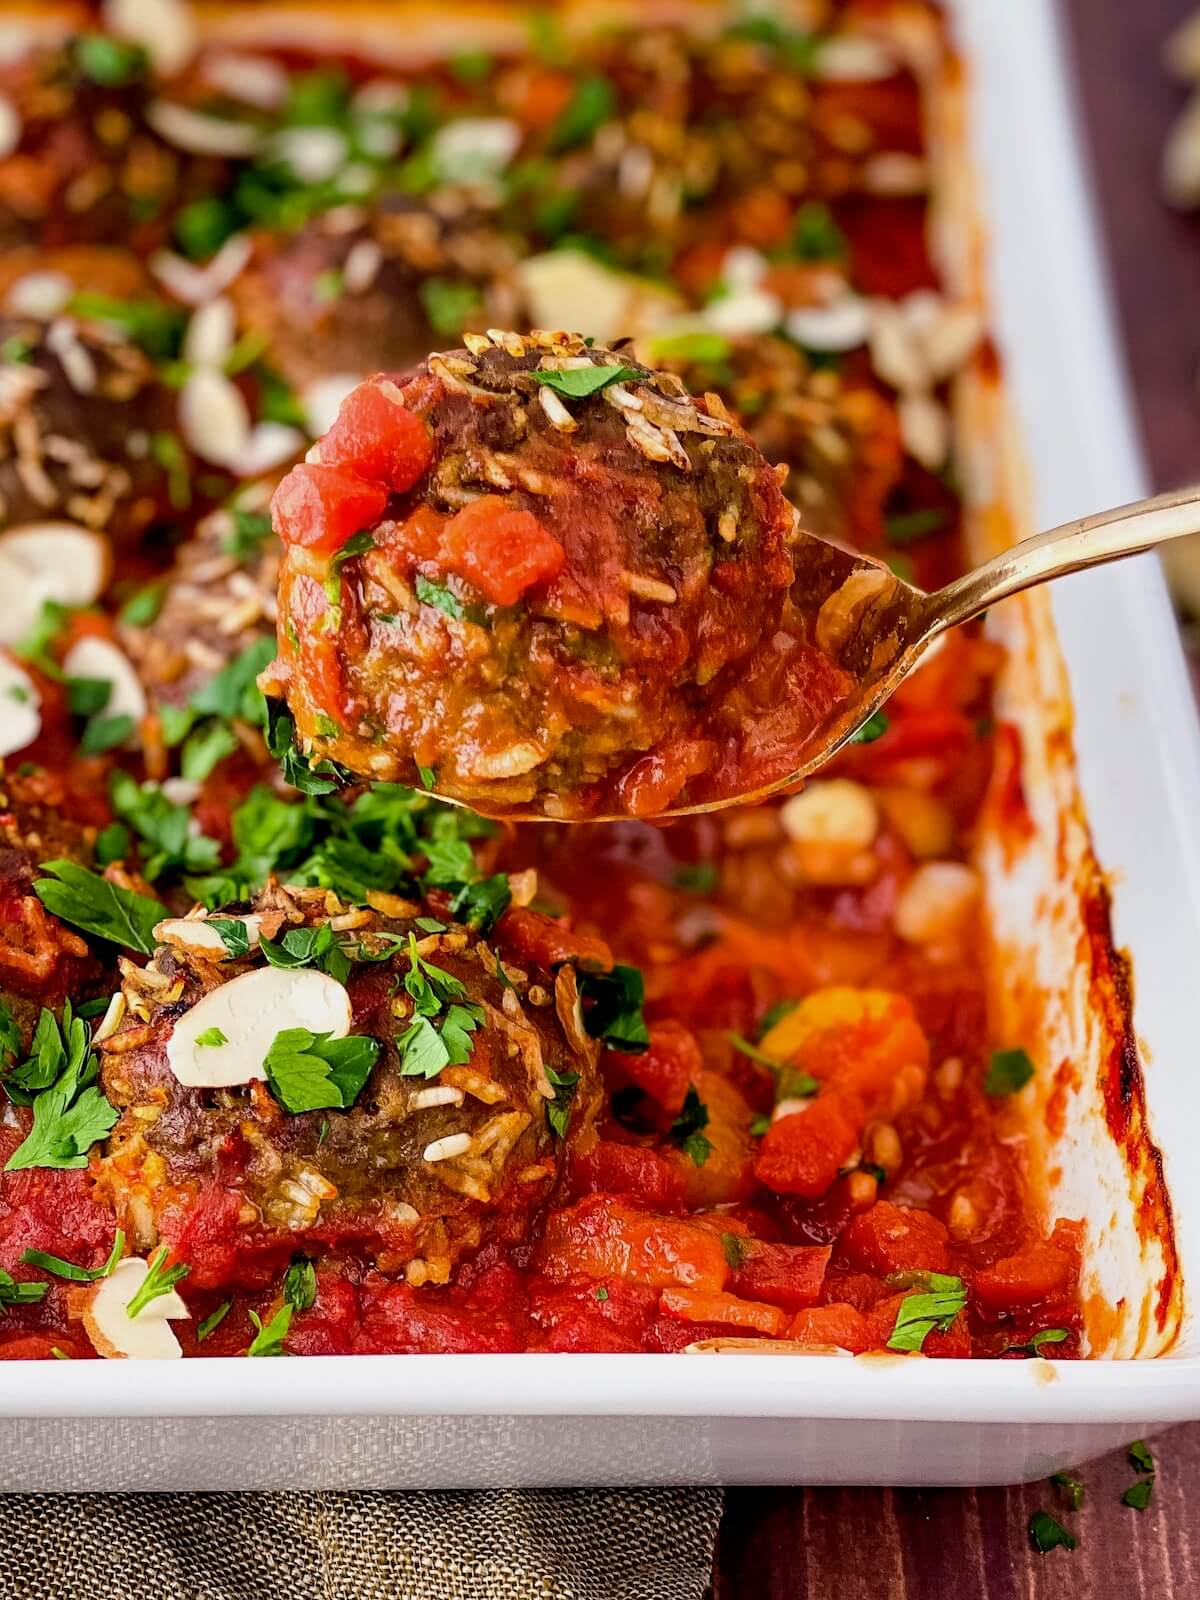 Moroccan porcupine meatball on a spoon